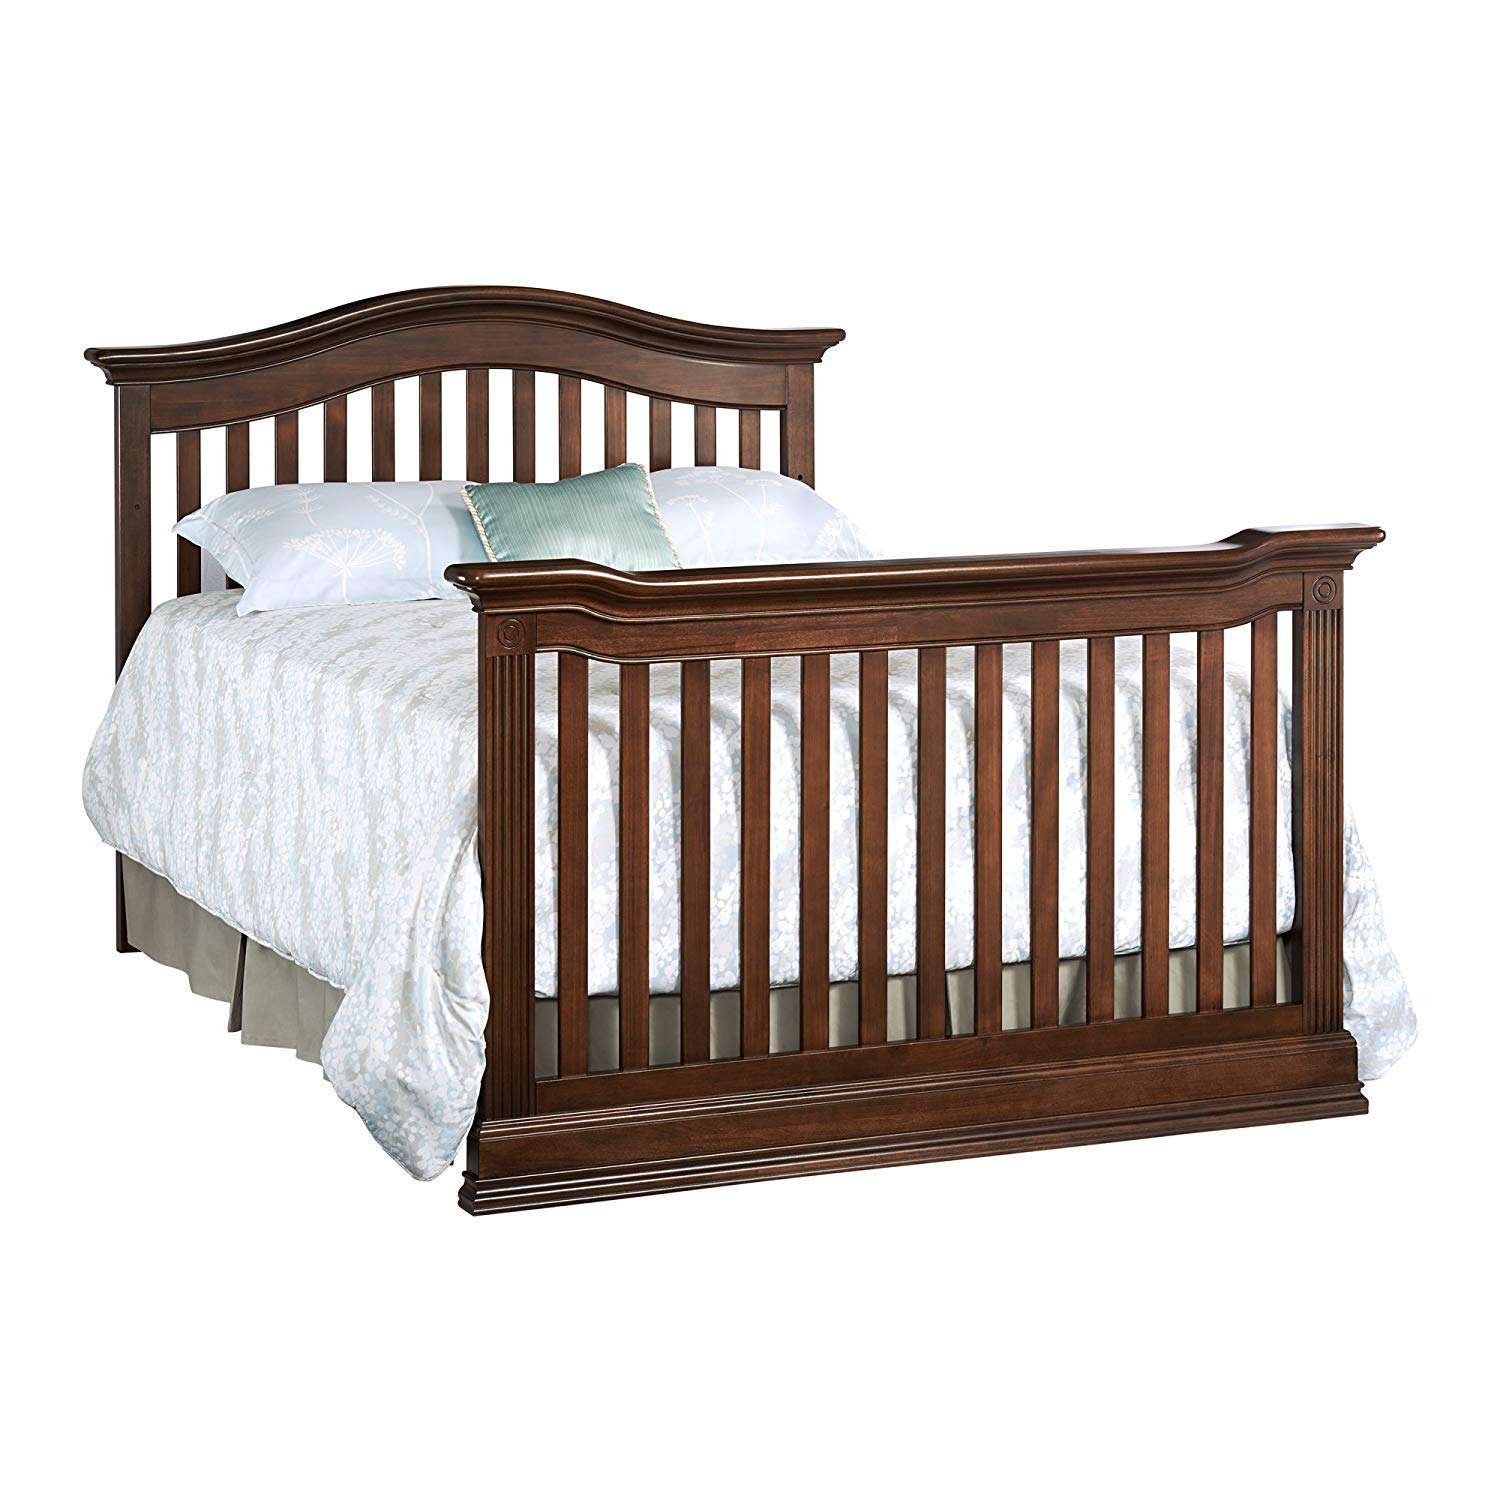 Baby Cache Montana Collection Crib Conversion Kit, Brown Sugar by Baby Cache